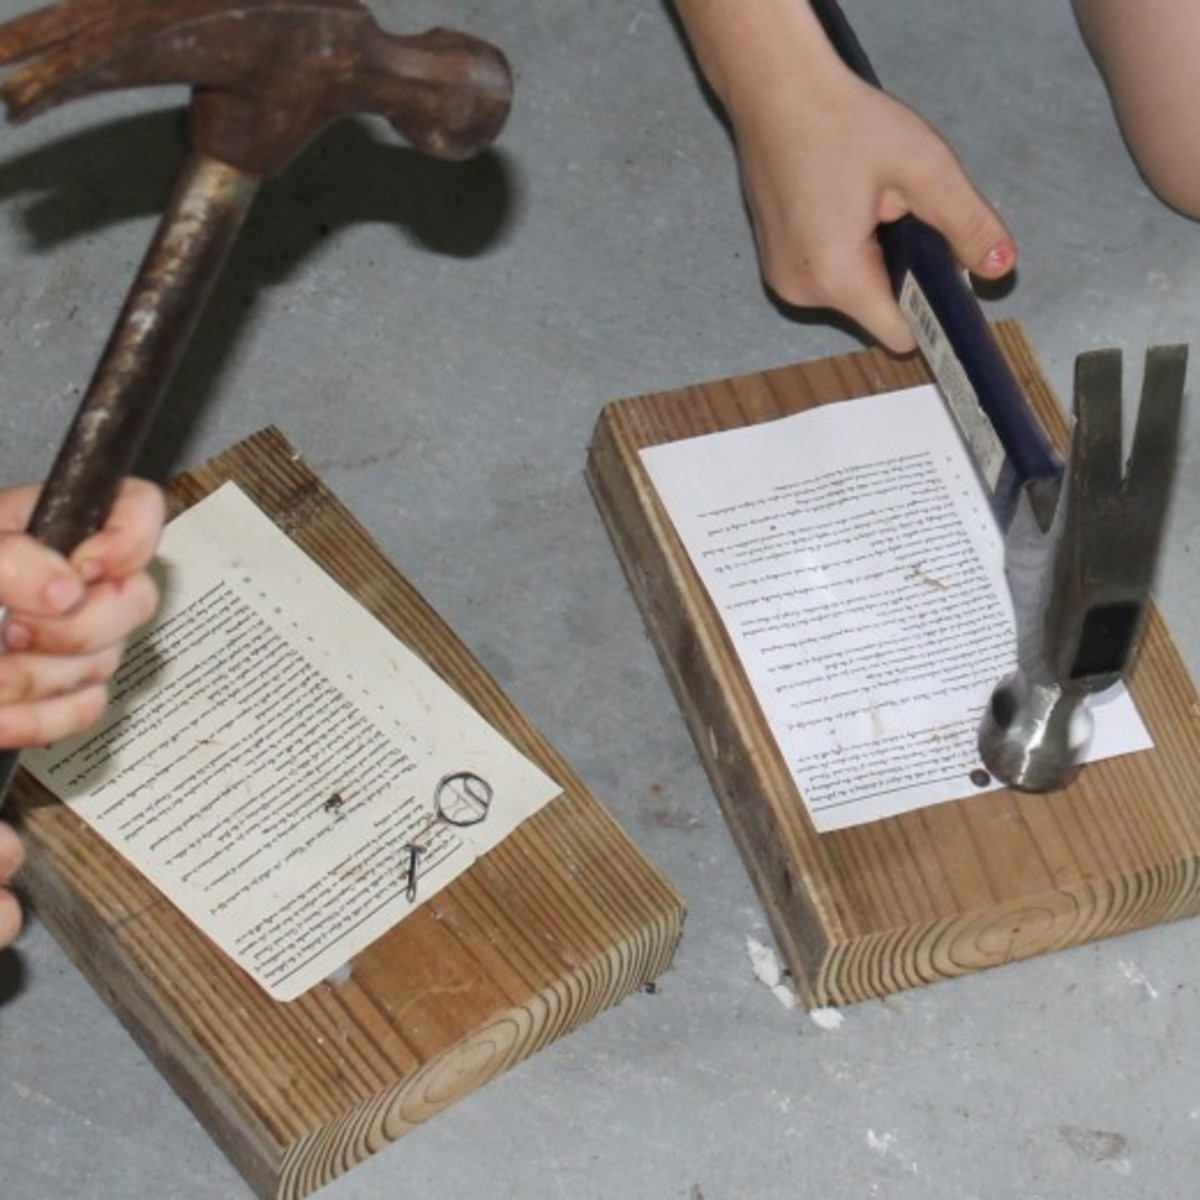 """Nailing copies of the """"Ninety-five Theses"""" was one of the activities we did this week during our History Morning Basket & Activities time on the Protestant Reformation."""